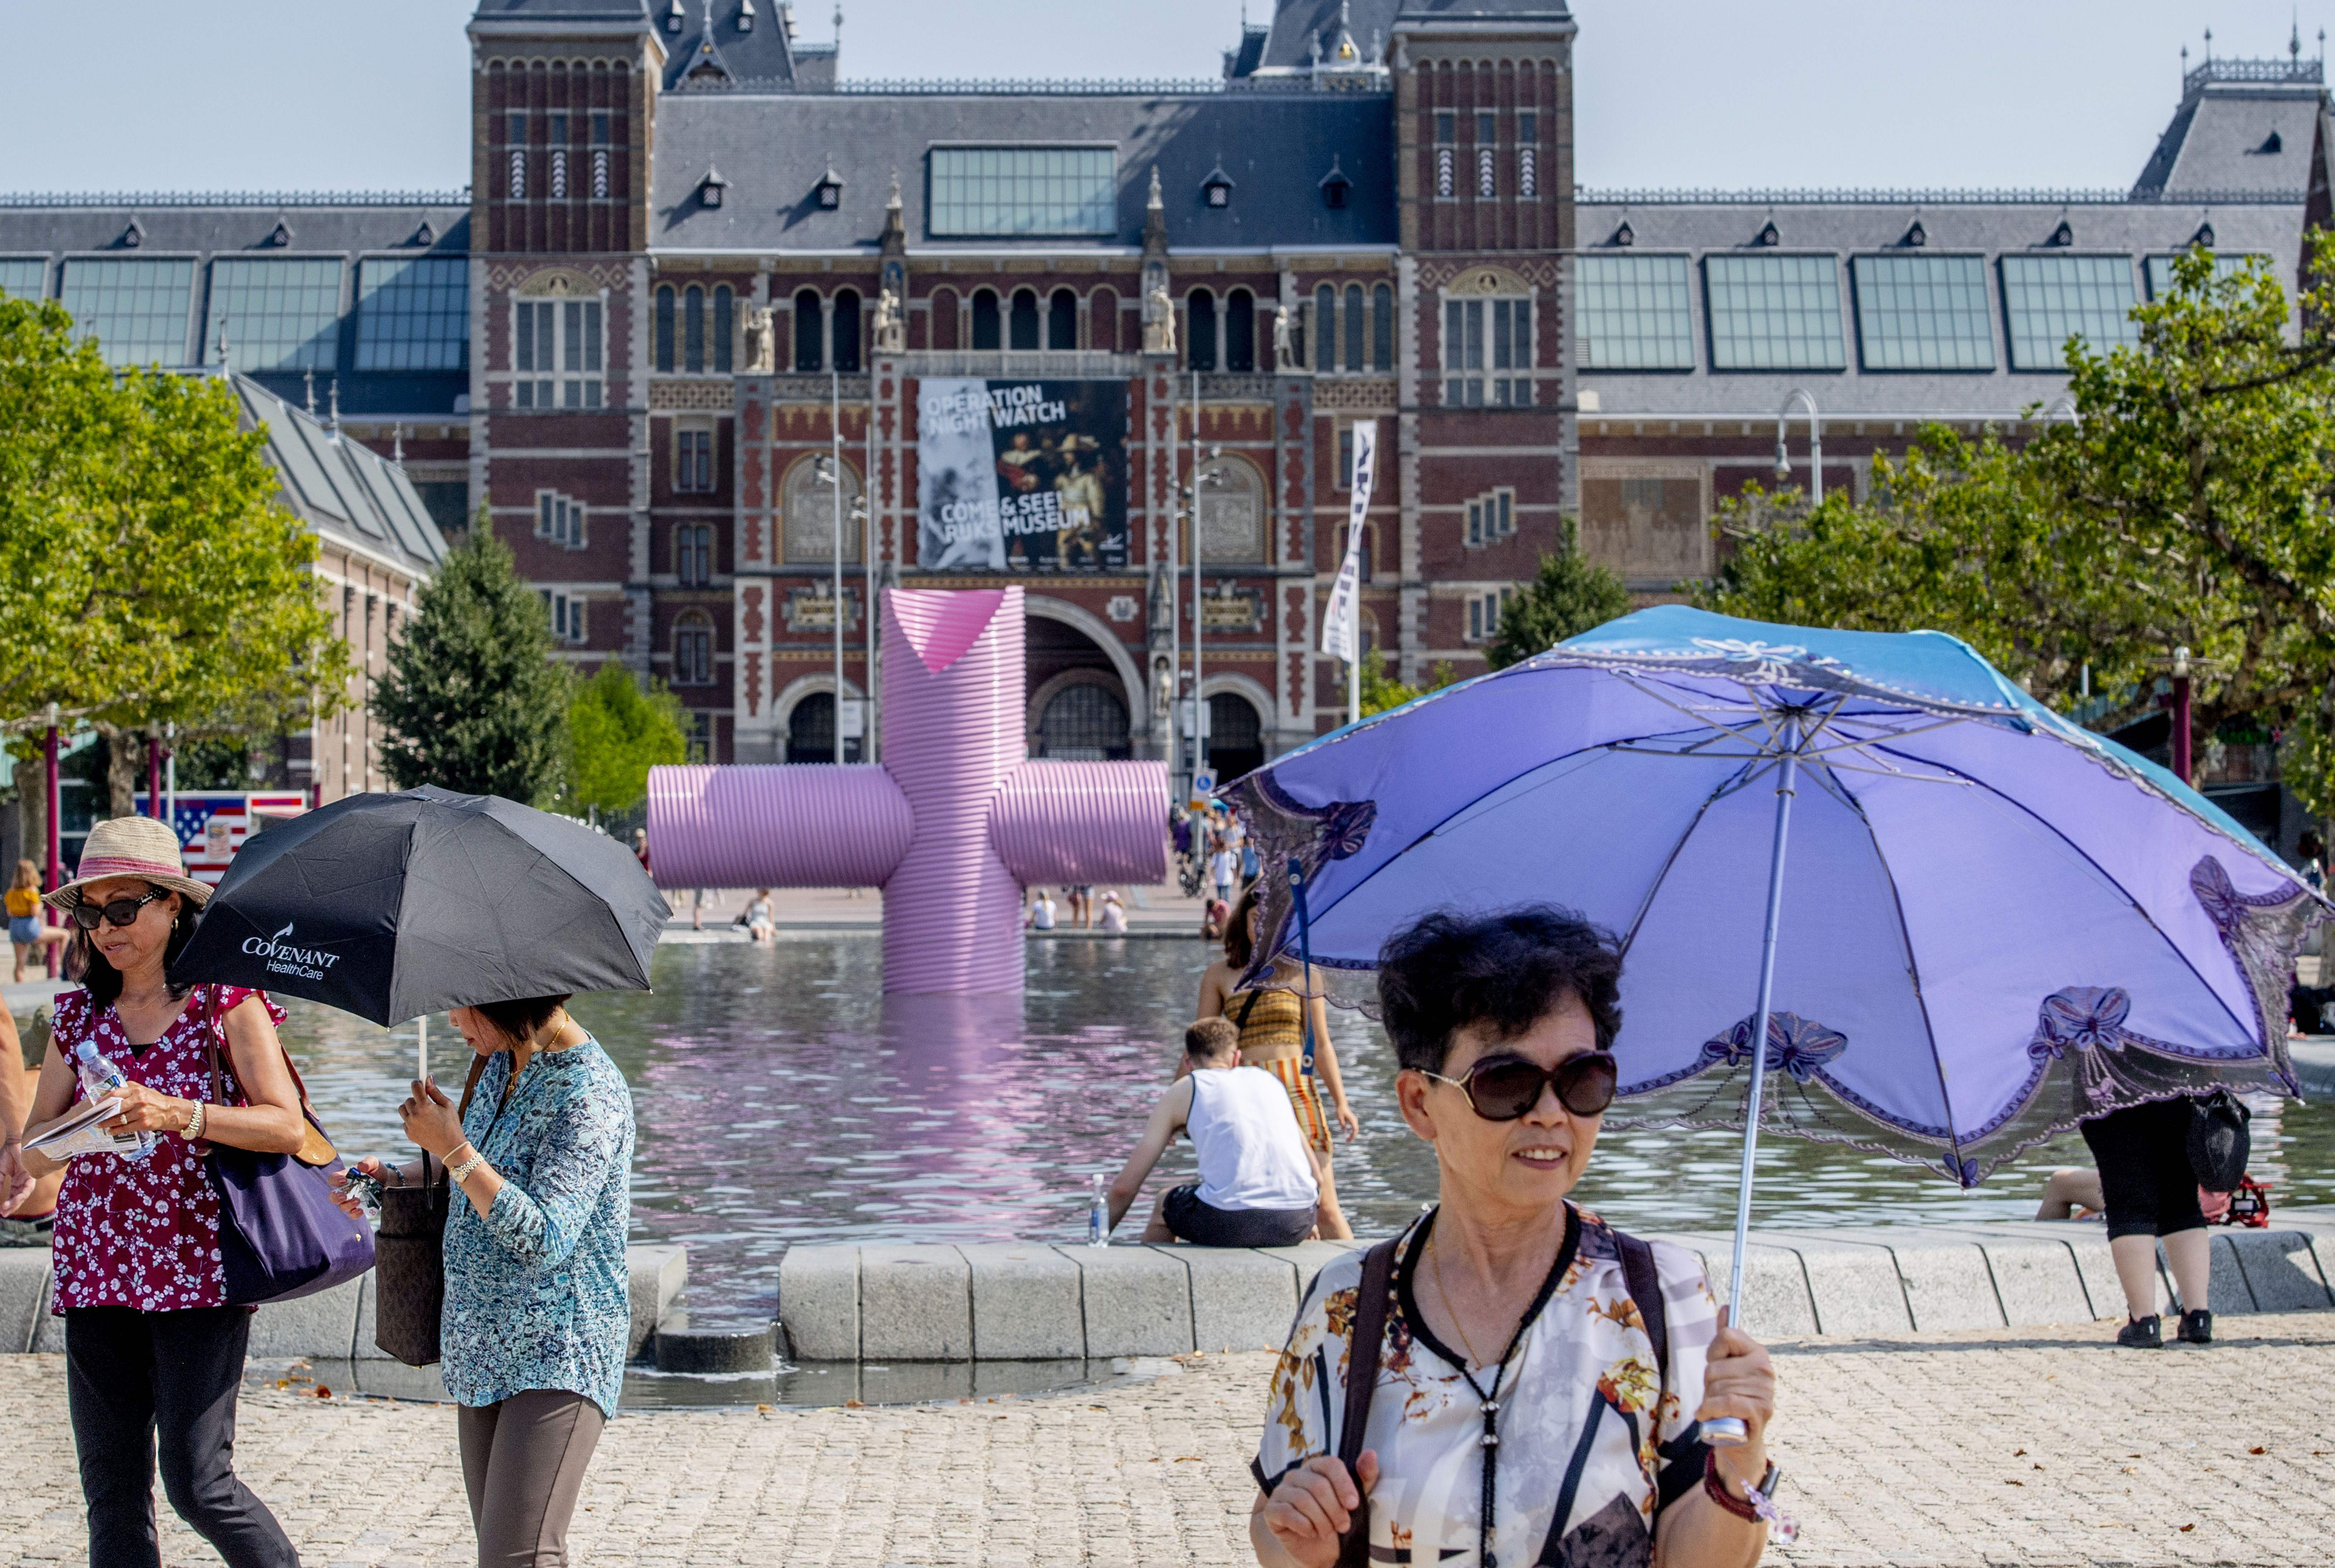 A woman holds an umbrella to protect herself from the sun as she walks past the Rijksmuseum in Amsterdam on Thursday.